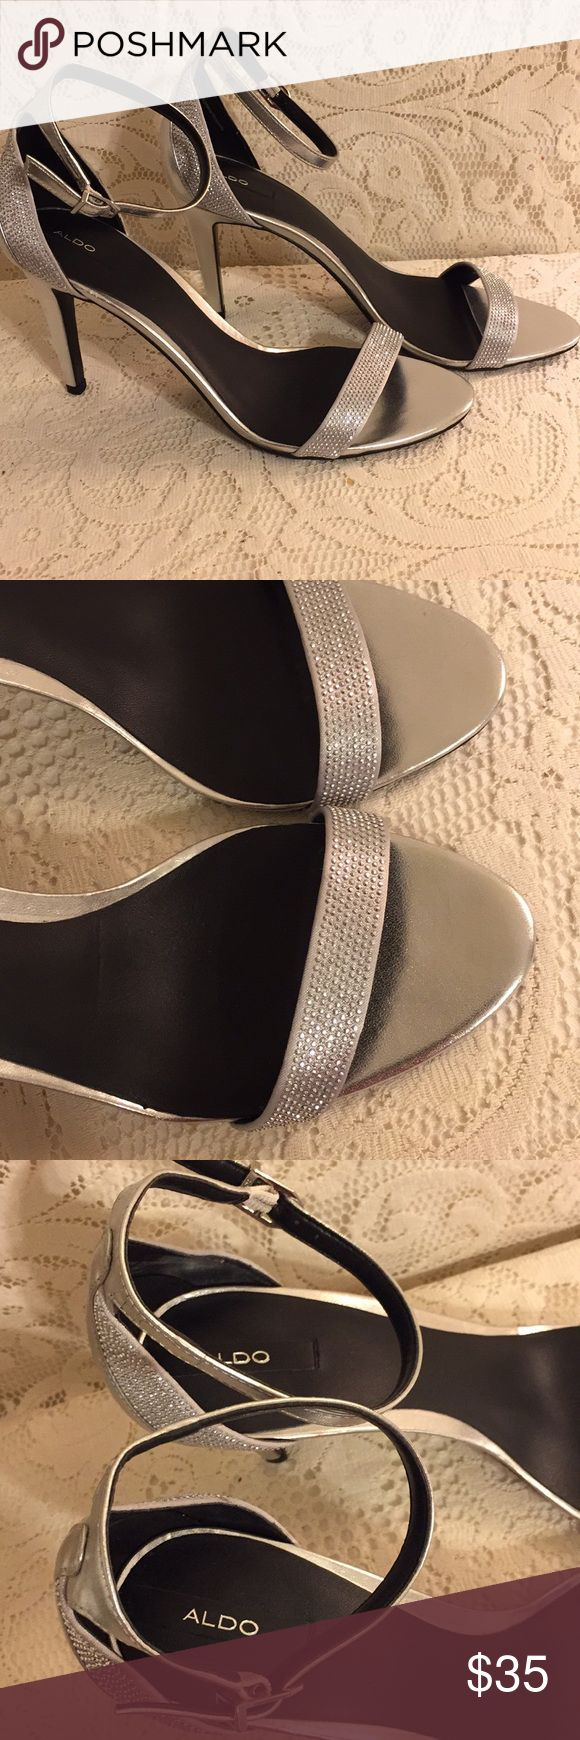 Glamorous Silver ALDO Heels Sz 10! Great pair of gently-worn silver ALDO heels, size 10. Glittery accents on strap that goes over toes & on back. Ankle strap shoes off your ankles. A few tiny marks on right heel and left side of the back of the right shoe - barely noticeable. Gorgeous with your spring and summer dresses or jeans! Aldo Shoes Heels